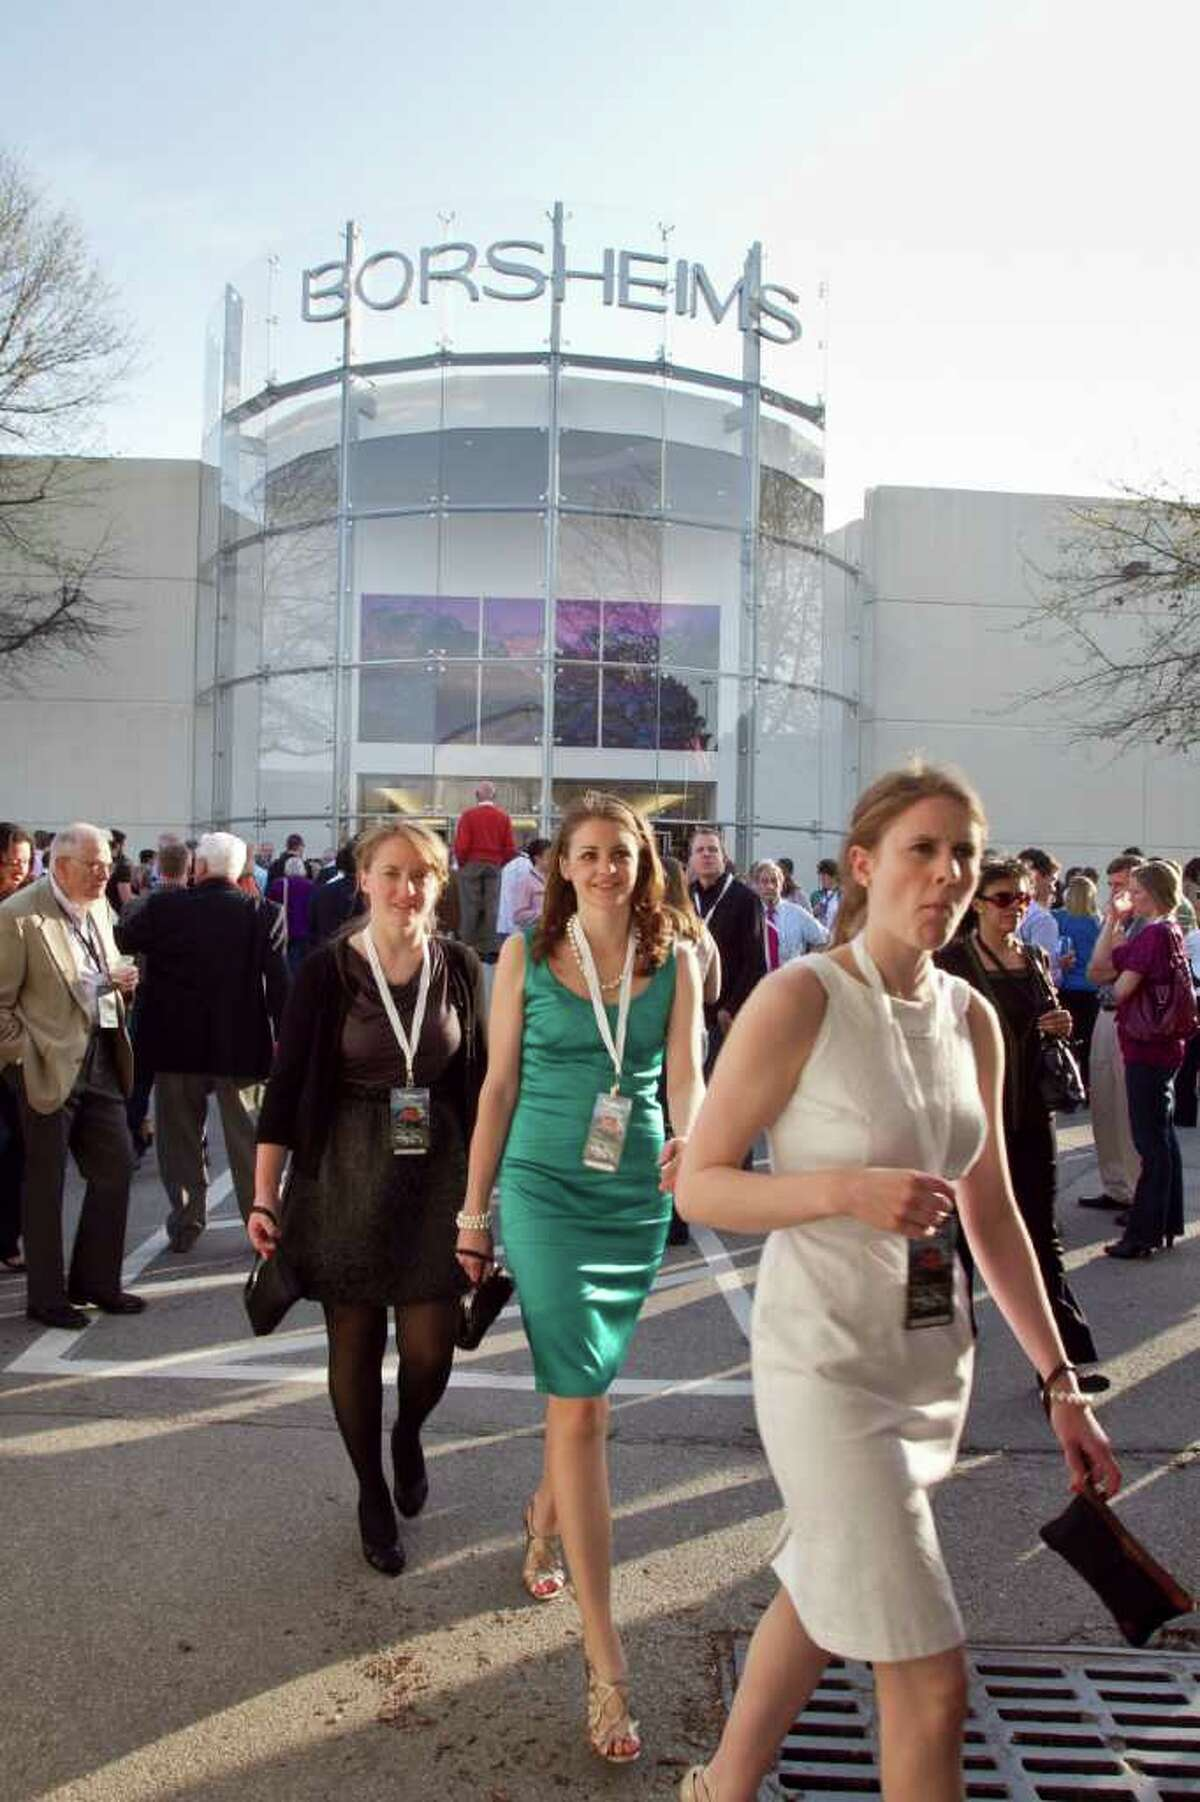 Shareholders walk past the facade of Borsheims, at a cocktail party hosted by the Berkshire-owned jewelry store, in Omaha, Neb., Friday, April 29, 2011. The cocktail party welcomes the many thousands who arrive to Omaha for the annual Berkshire Hathaway shareholders meeting, which starts on Saturday. (AP Photo/Nati Harnik)